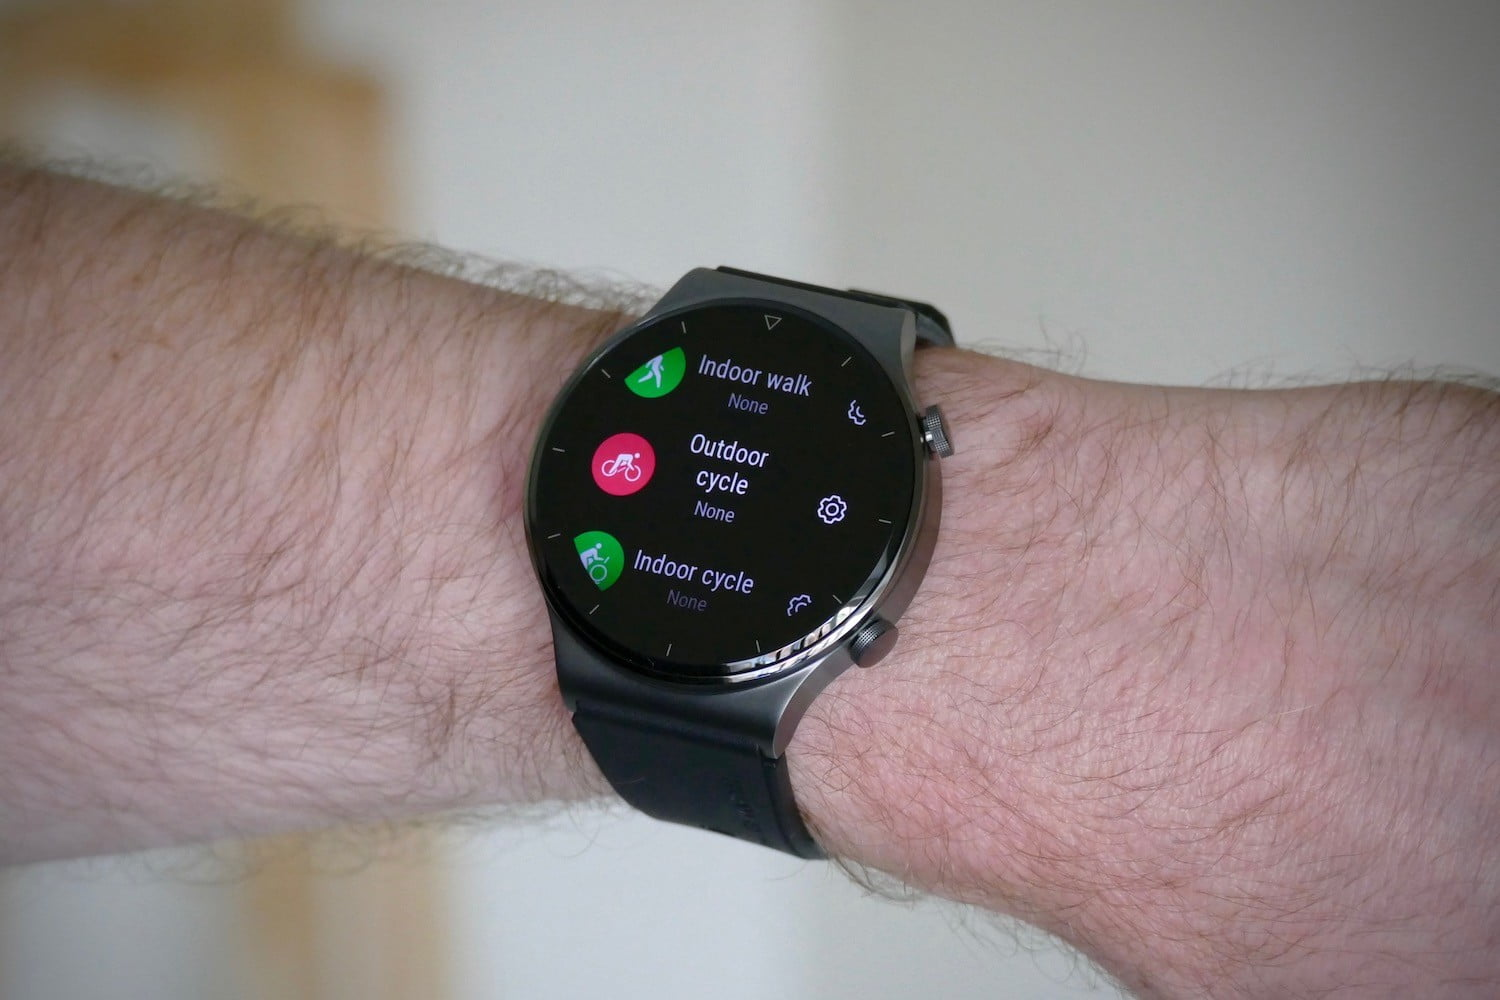 huawei watch gt2 pro hands on features price photos release date workout